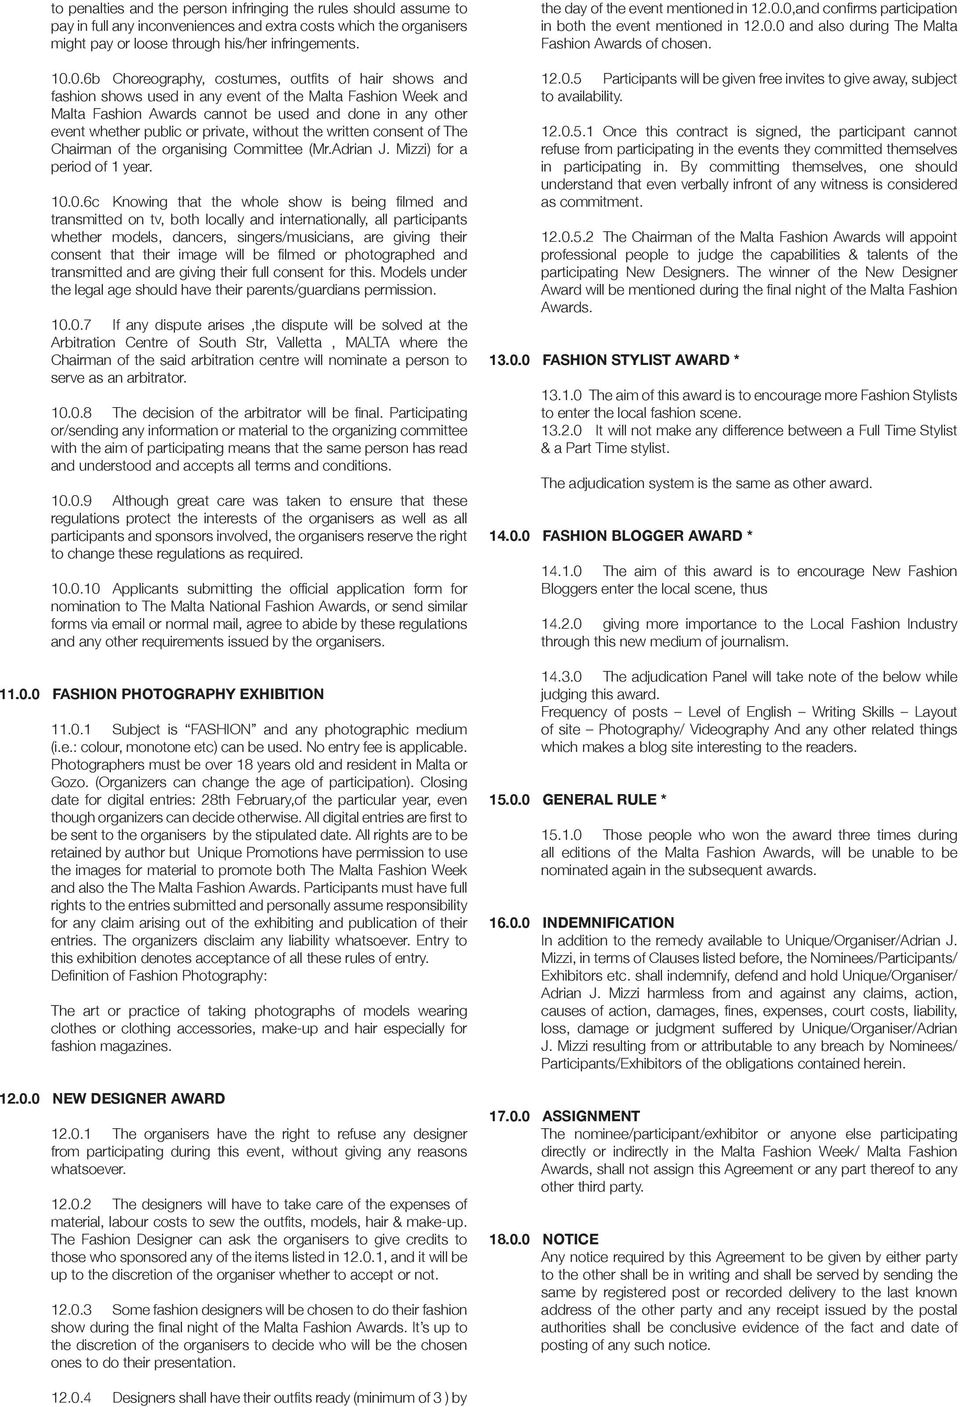 Rules Regulations For Participants Of The Malta Fashion Week And The Malta Fashion Awards Pdf Free Download